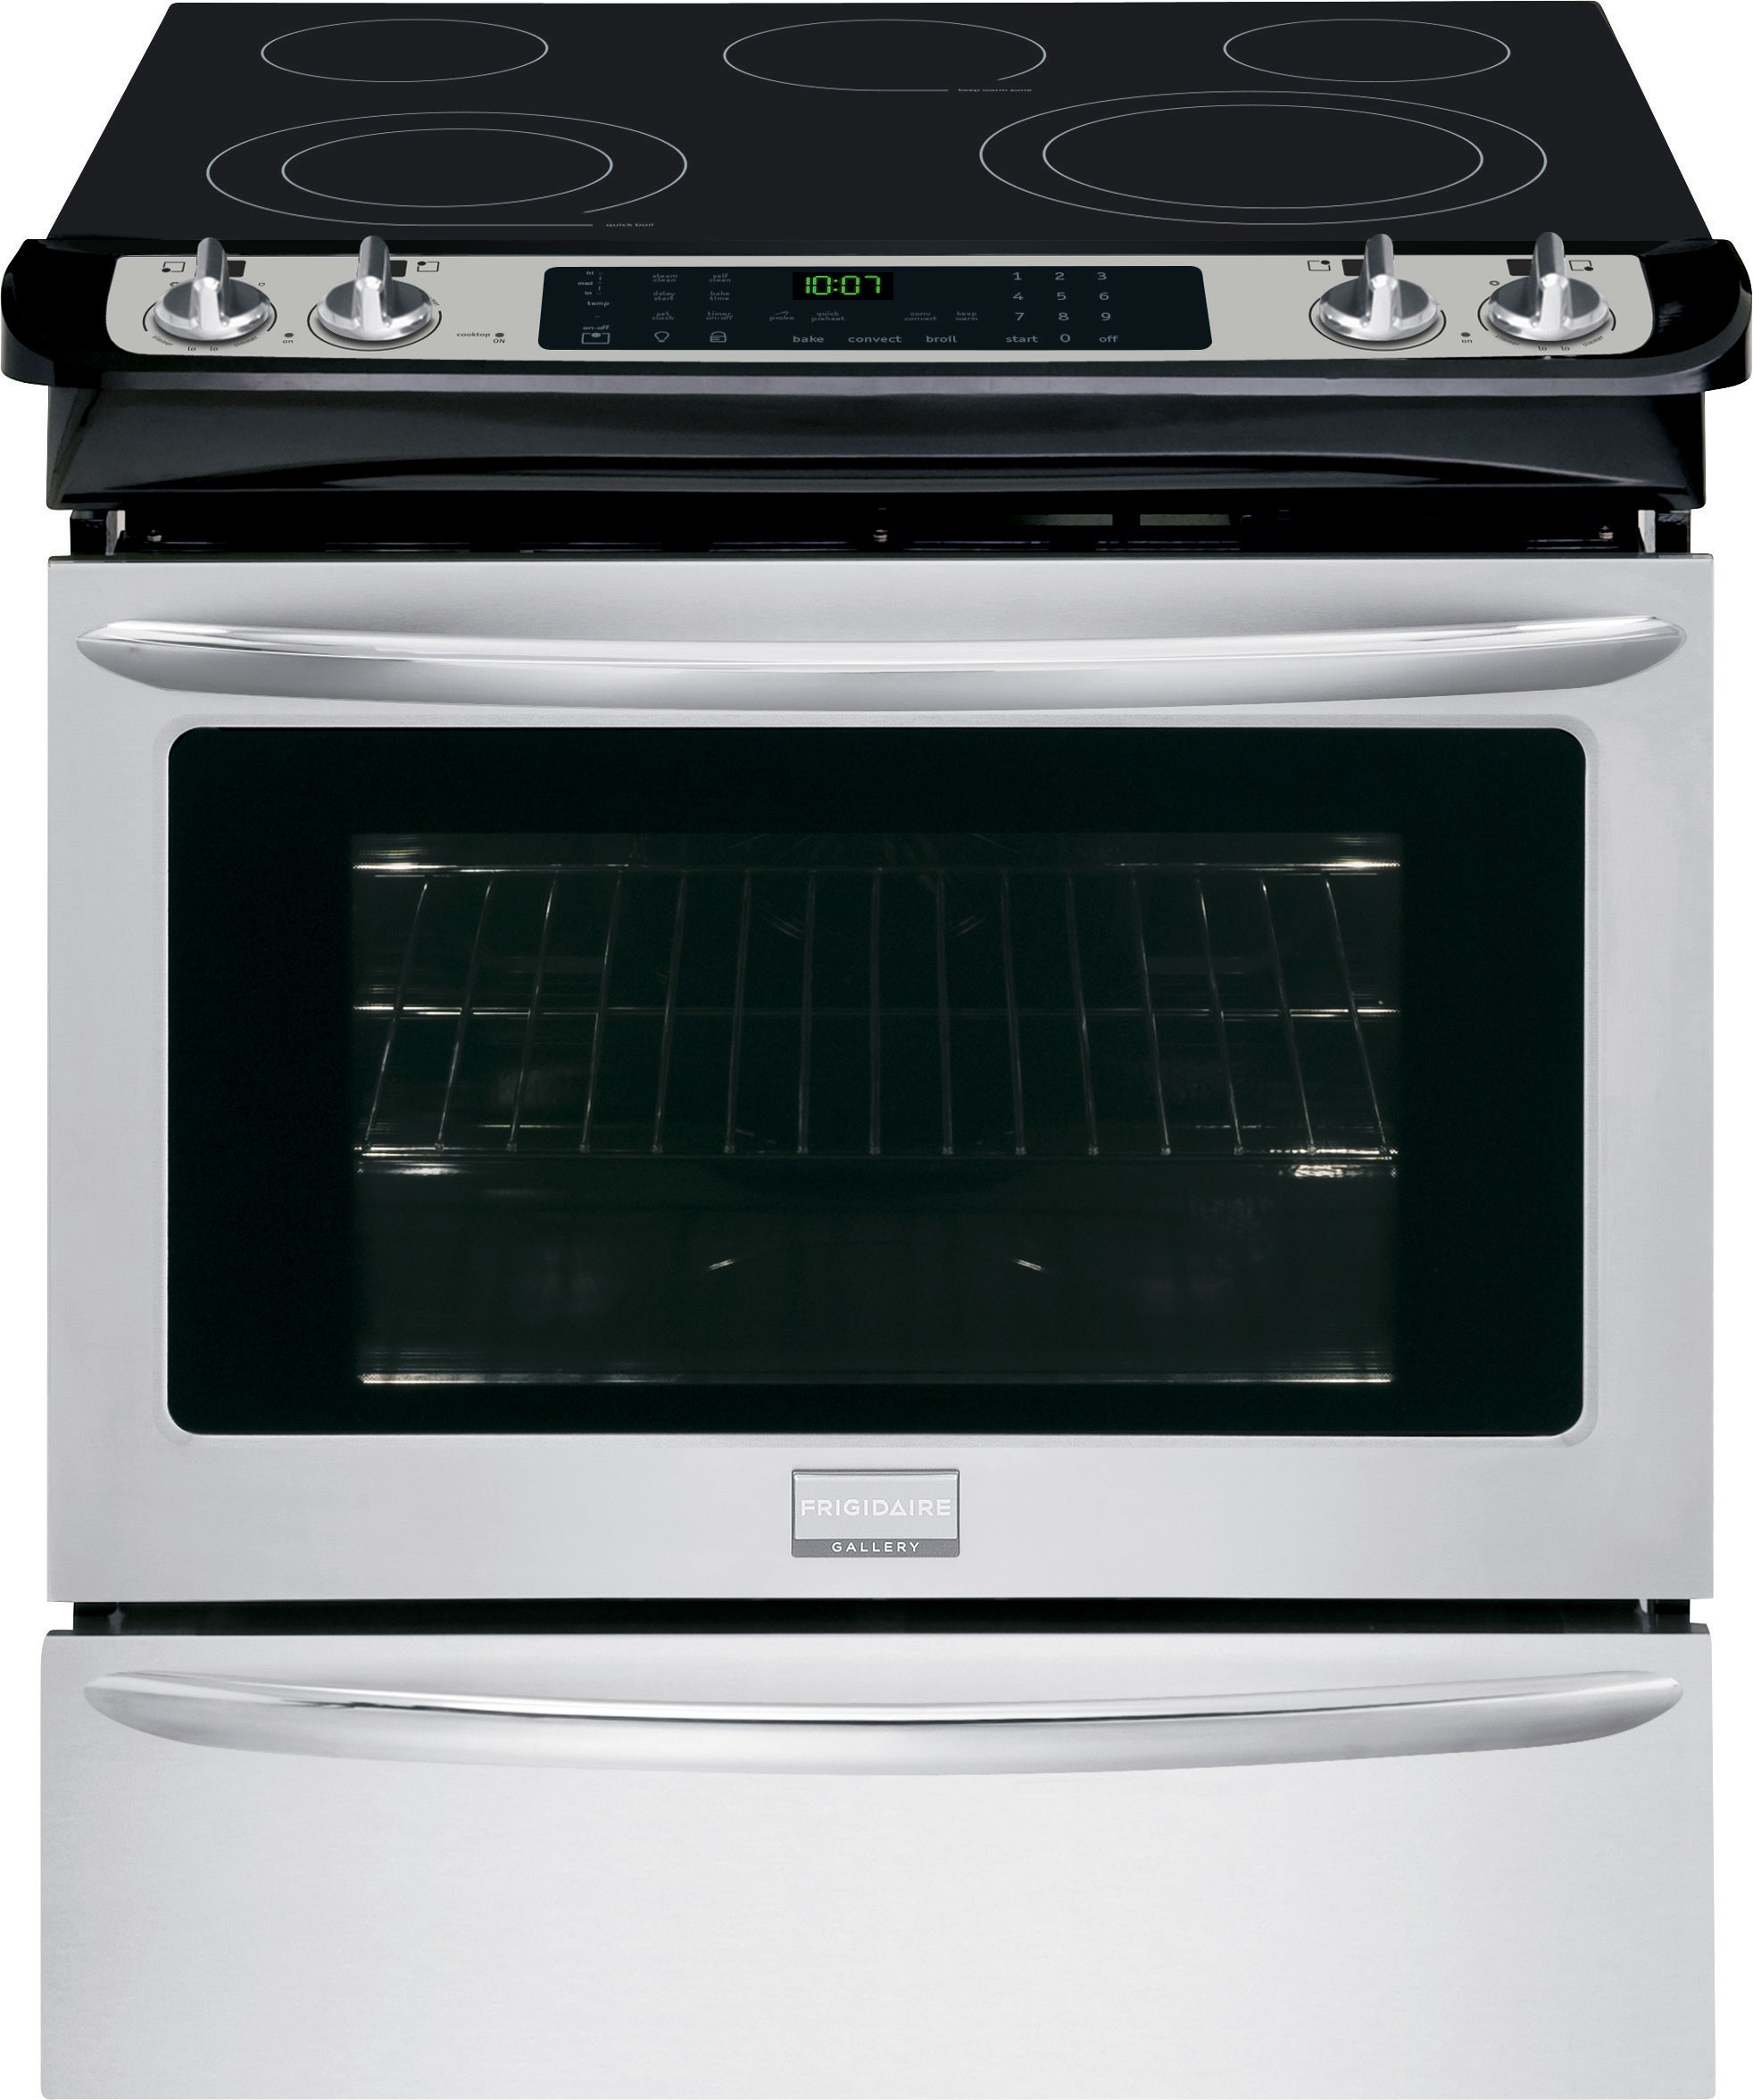 Frigidaire Fges3065p 30 Inch Slide In Smoothtop Electric